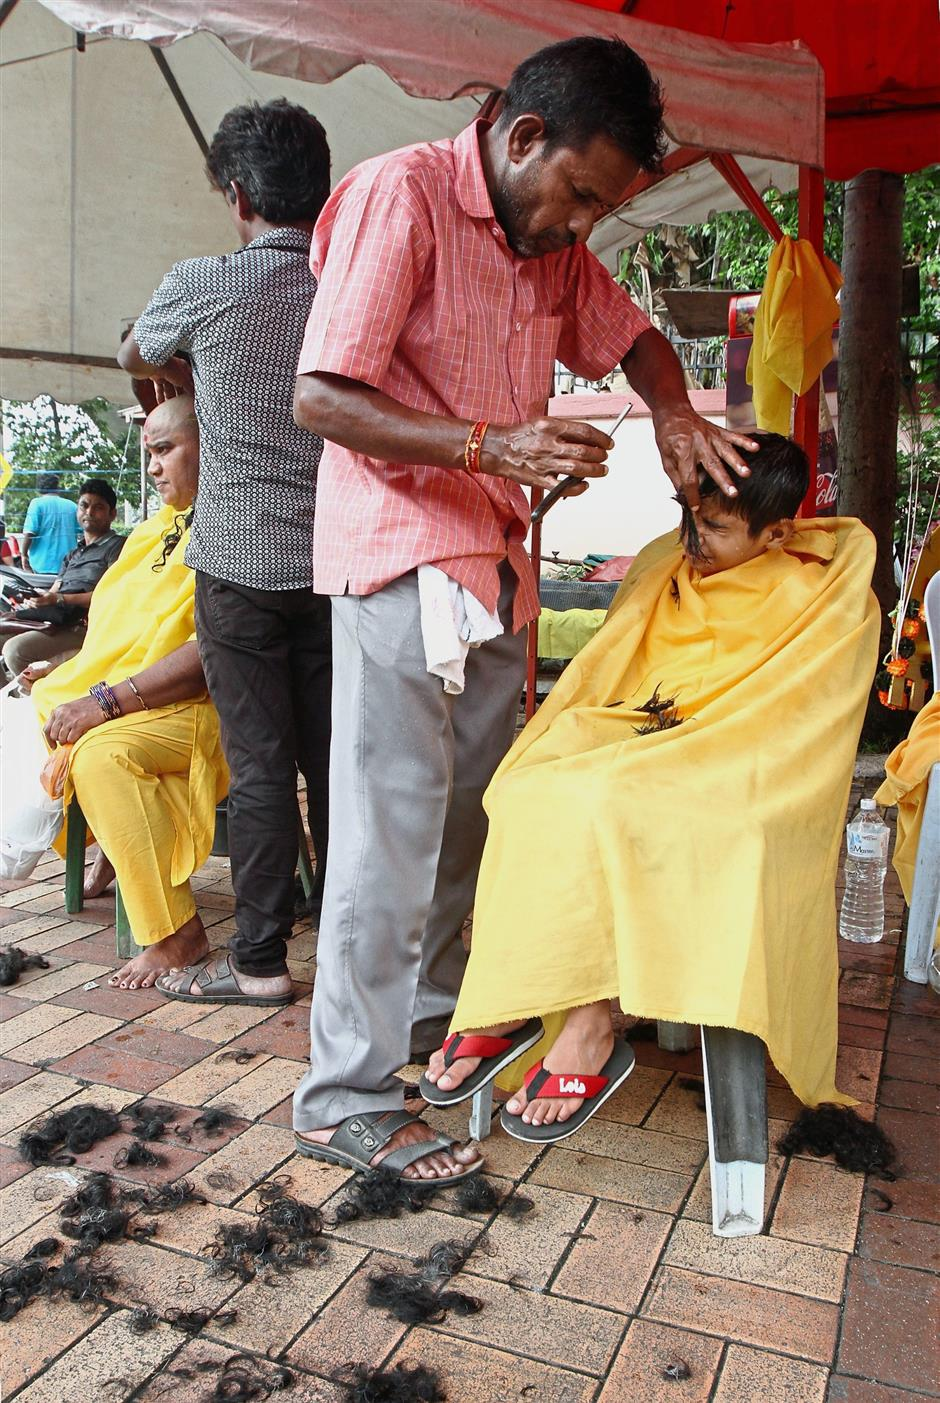 Those who offer penance may also opt to shave their heads today.